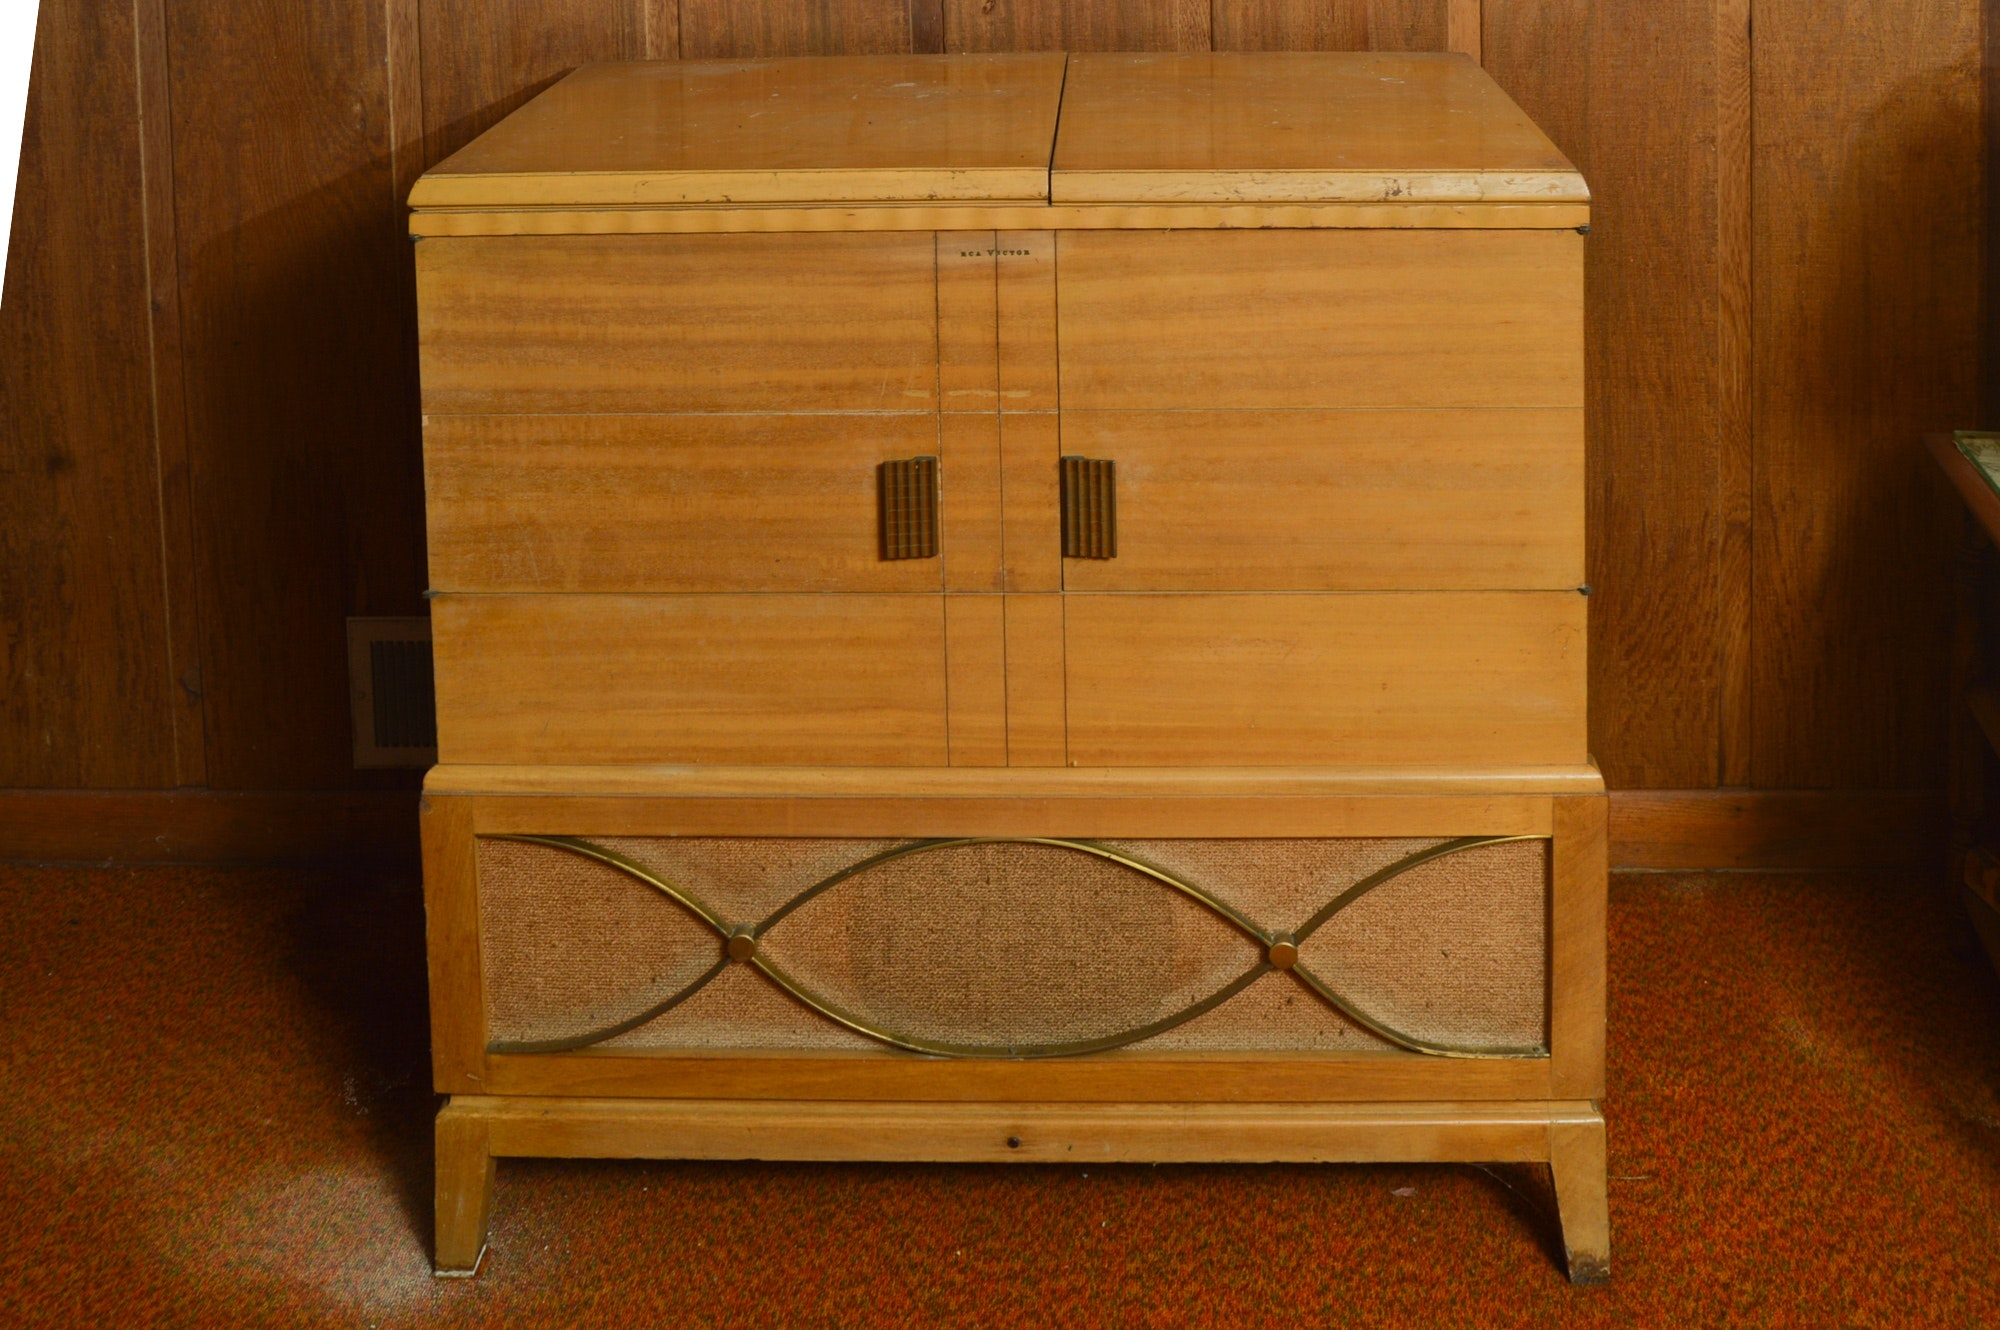 Vintage Home Entertainment Center by RCA Victor